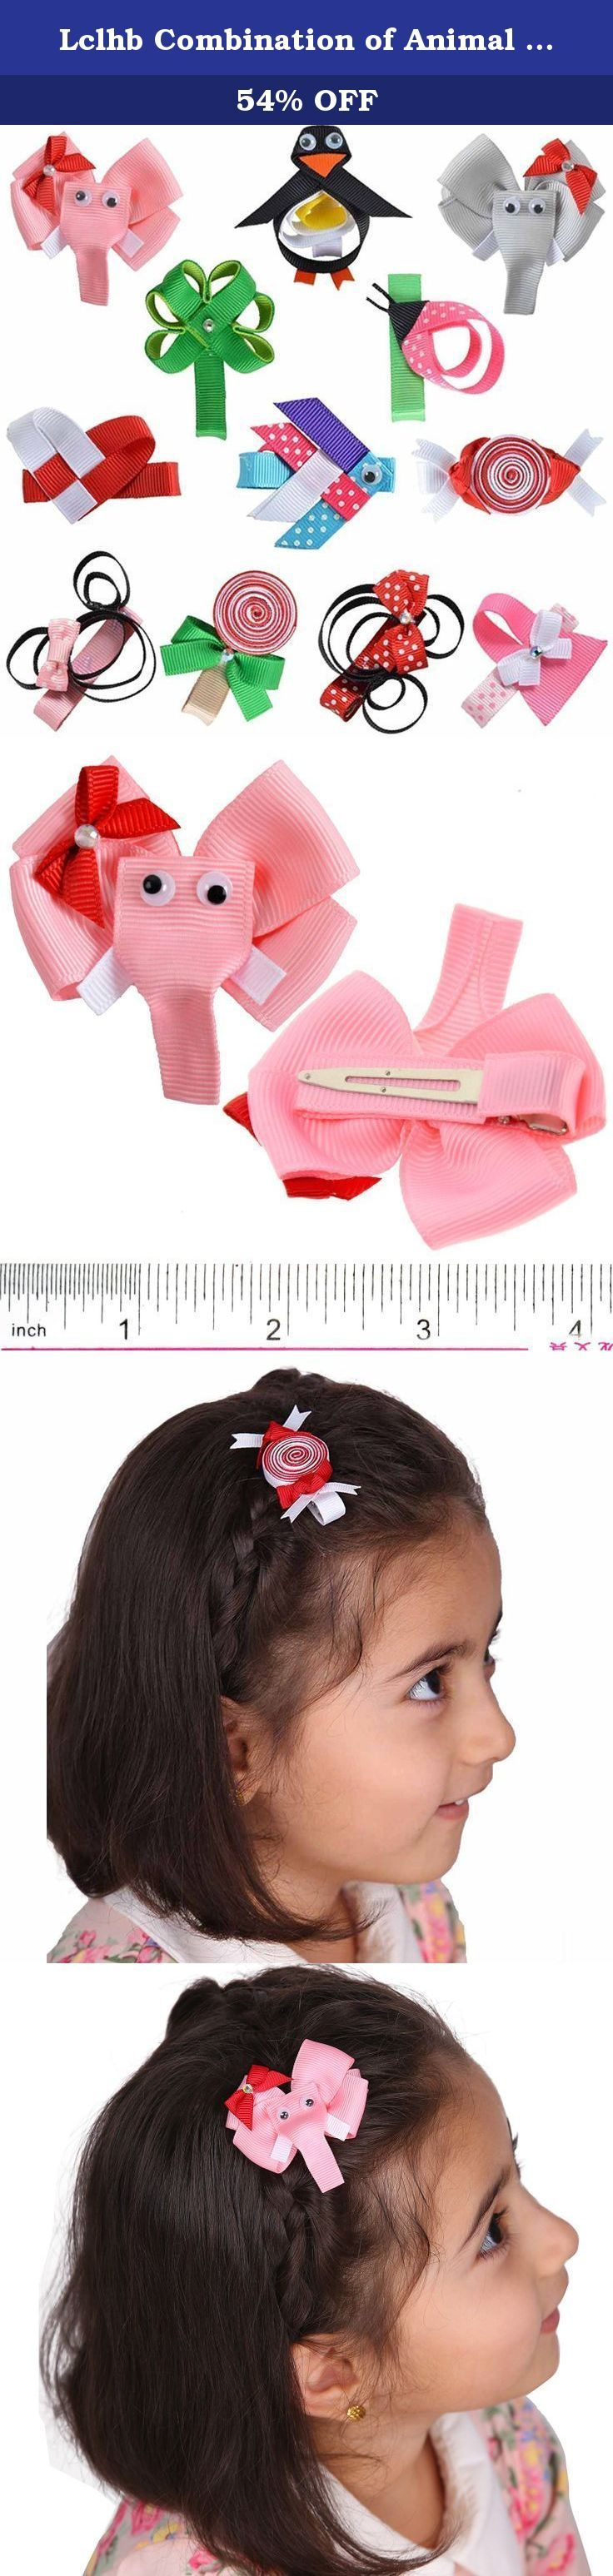 "Lclhb Combination of Animal Fish Candy Hert Kids Hair Bows Baby Hair Clips Hw0103. Description Personalized Products These nice ribbon bows mounted on 1.81"" alligator clips . Sturdy Alligator clips are no teeth which don't hurt your hair and is easier to slide into hair without being caught and stuck. Our fashion hea????????????????????????????????????????????????????????????????????????????????????????????????????????????????????????????????..."